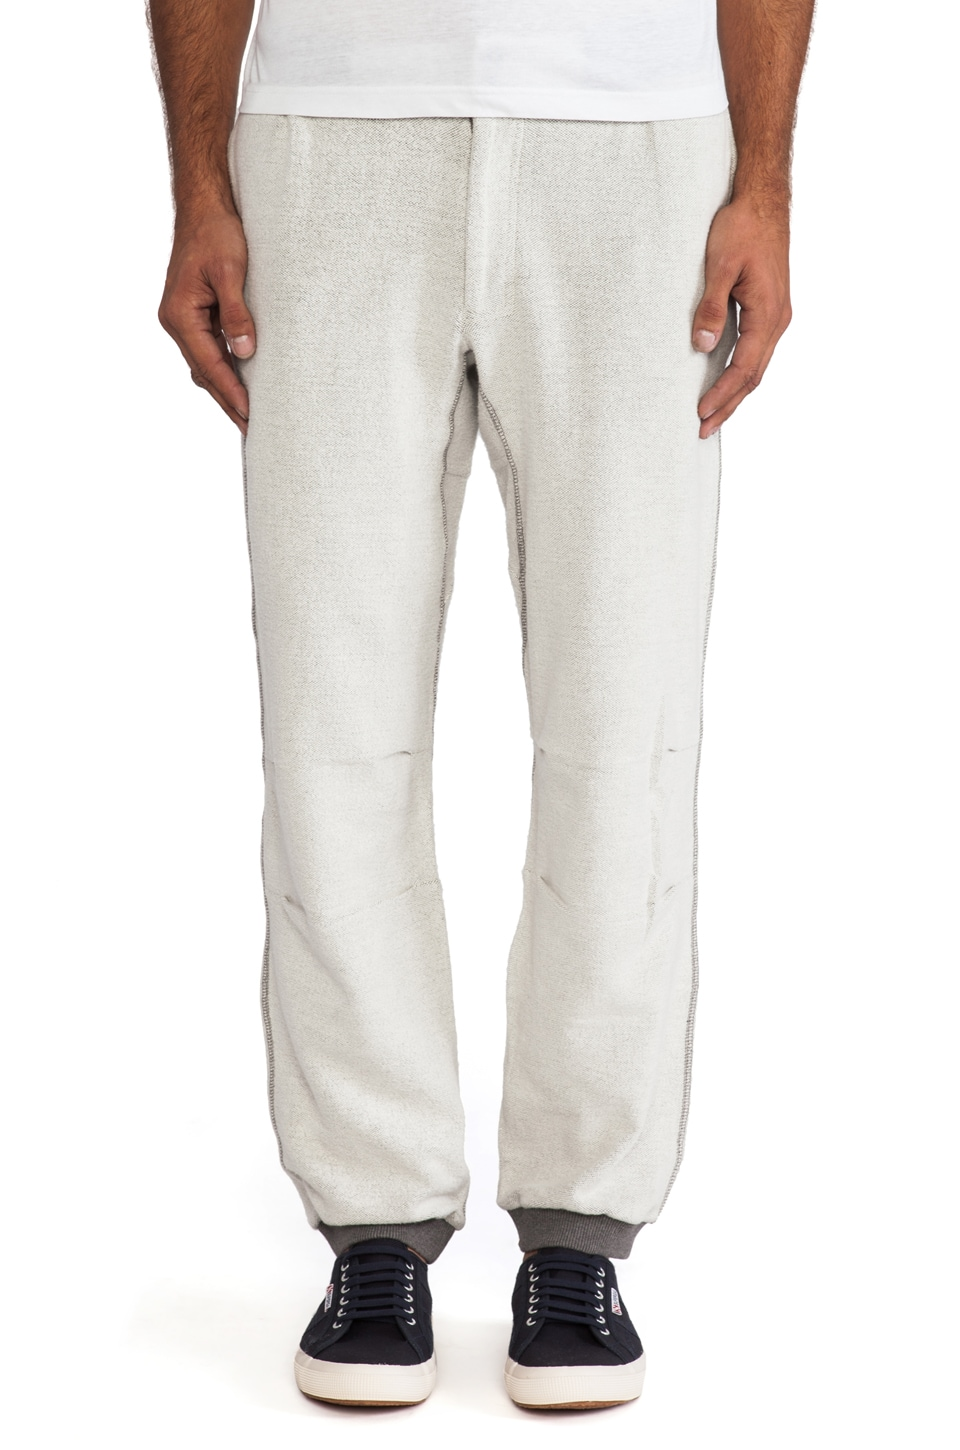 Burkman Bros. Cozy Athletic Pant in Natural